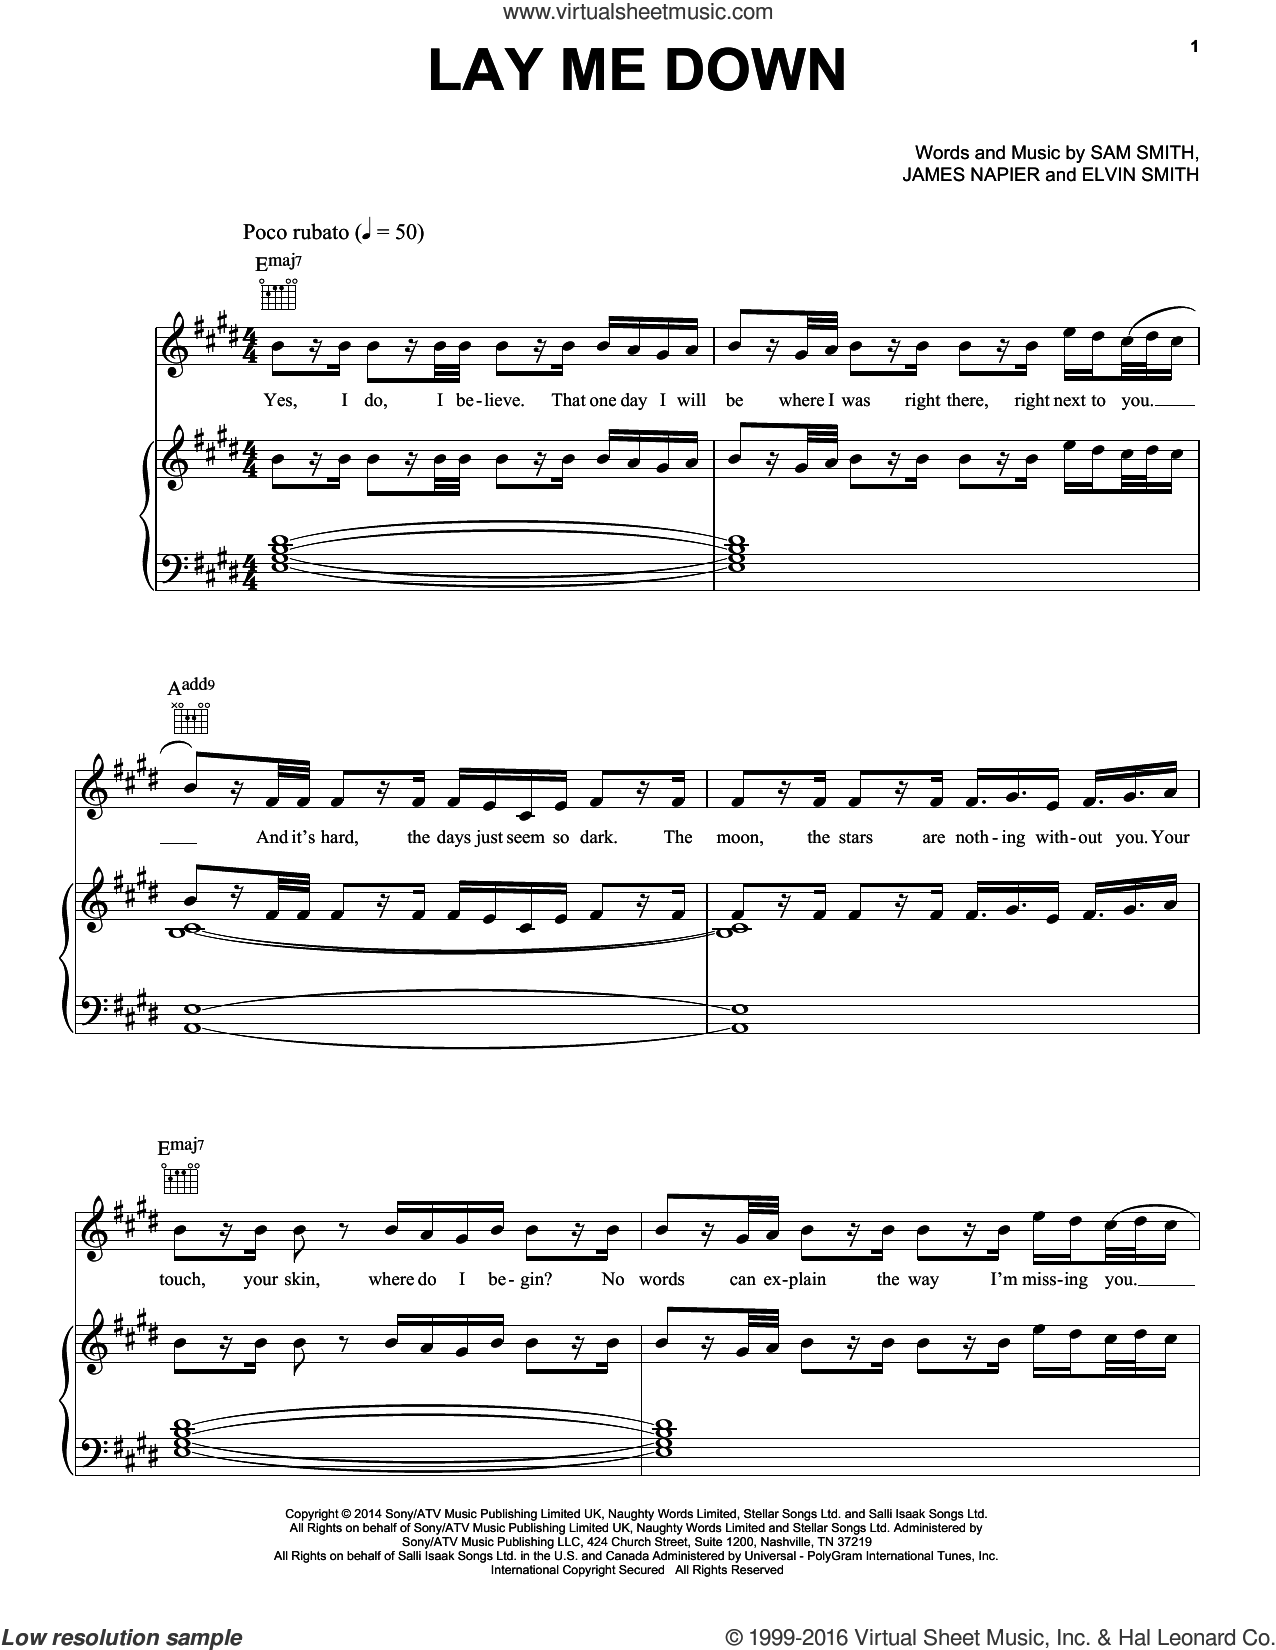 Lay Me Down sheet music for voice, piano or guitar by Sam Smith, Elvin Smith and James Napier, intermediate skill level